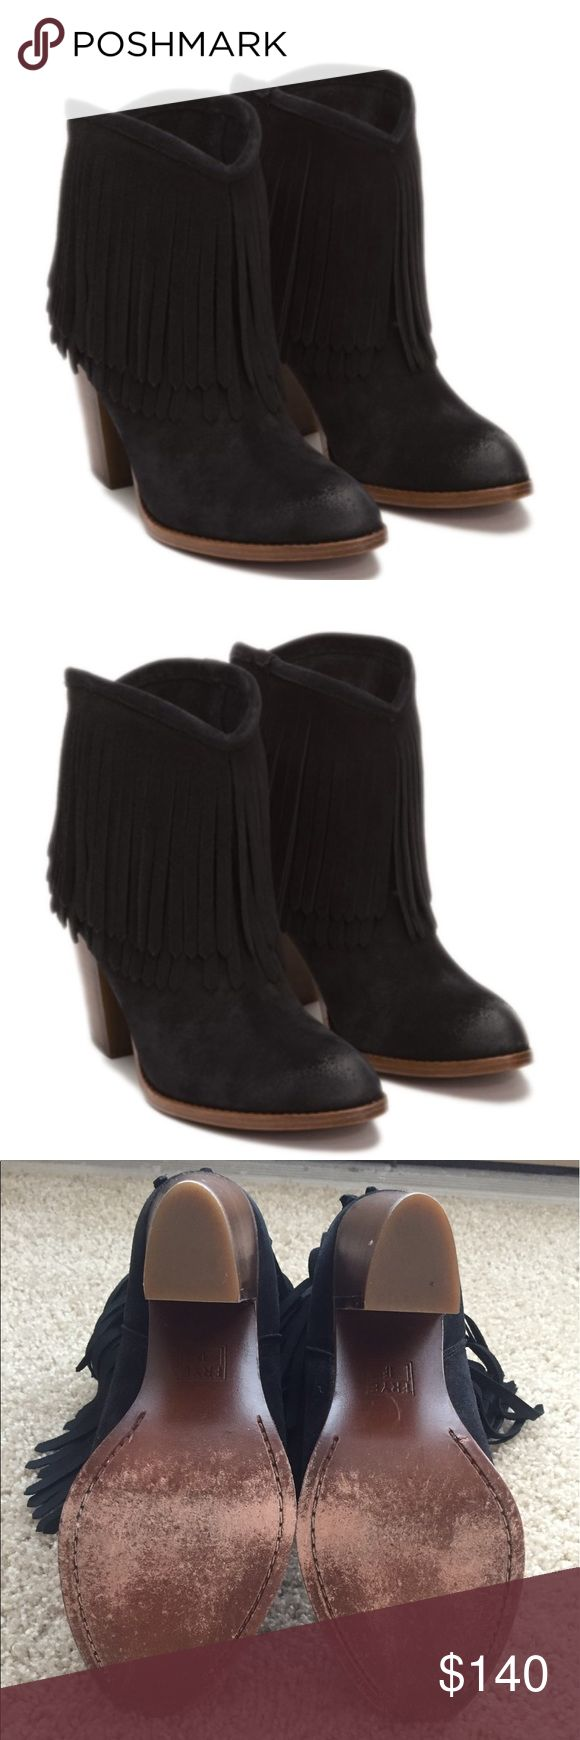 The Frye Company Ilana fringe short boot Classic western meets fun fringe in the Ilana Short boot from Frye! This suede boot is layered with long fringe & features a leather stacked heel that gives it an added flare. Frye Shoes Ankle Boots & Booties